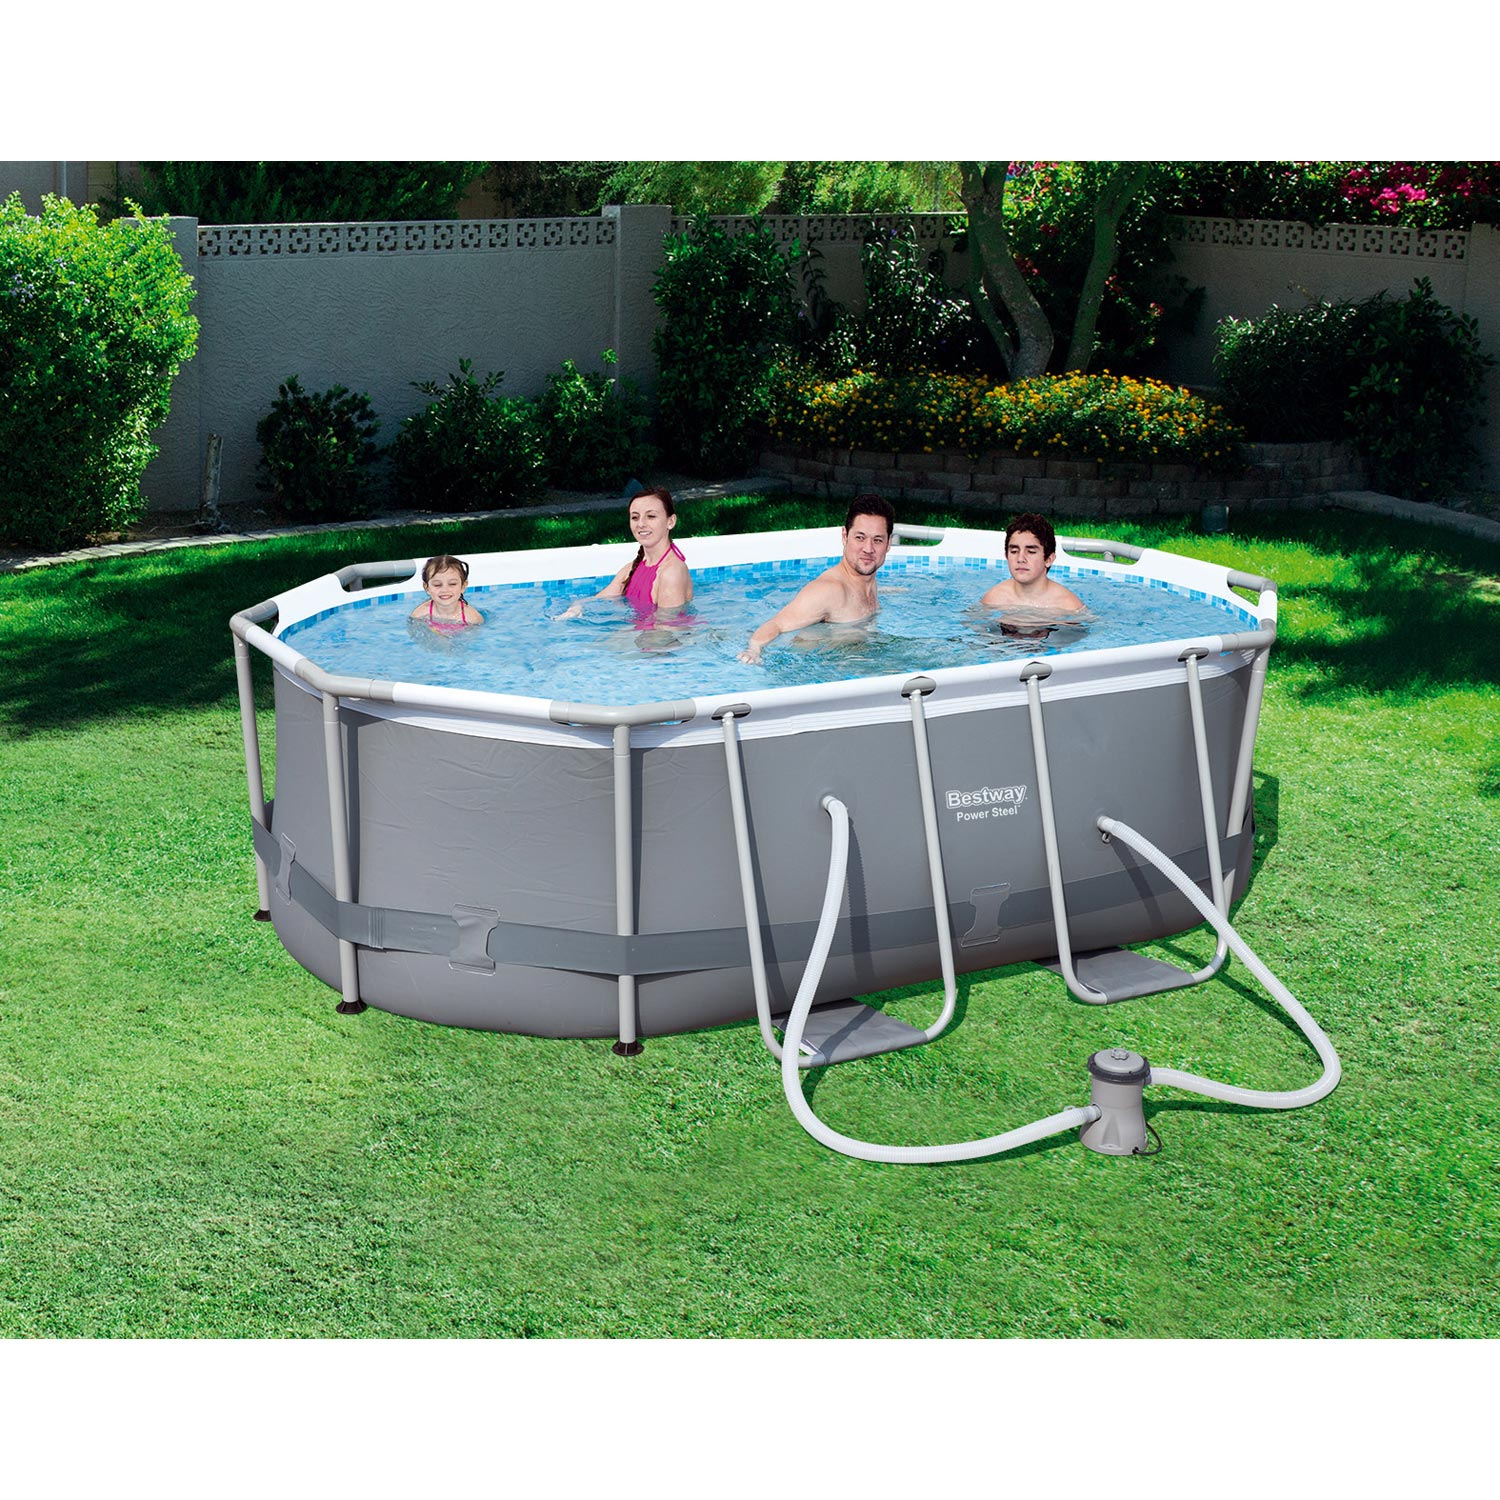 Piscine hors sol autoportante tubulaire bestway l 3 x l 2 for Piscine aure sole